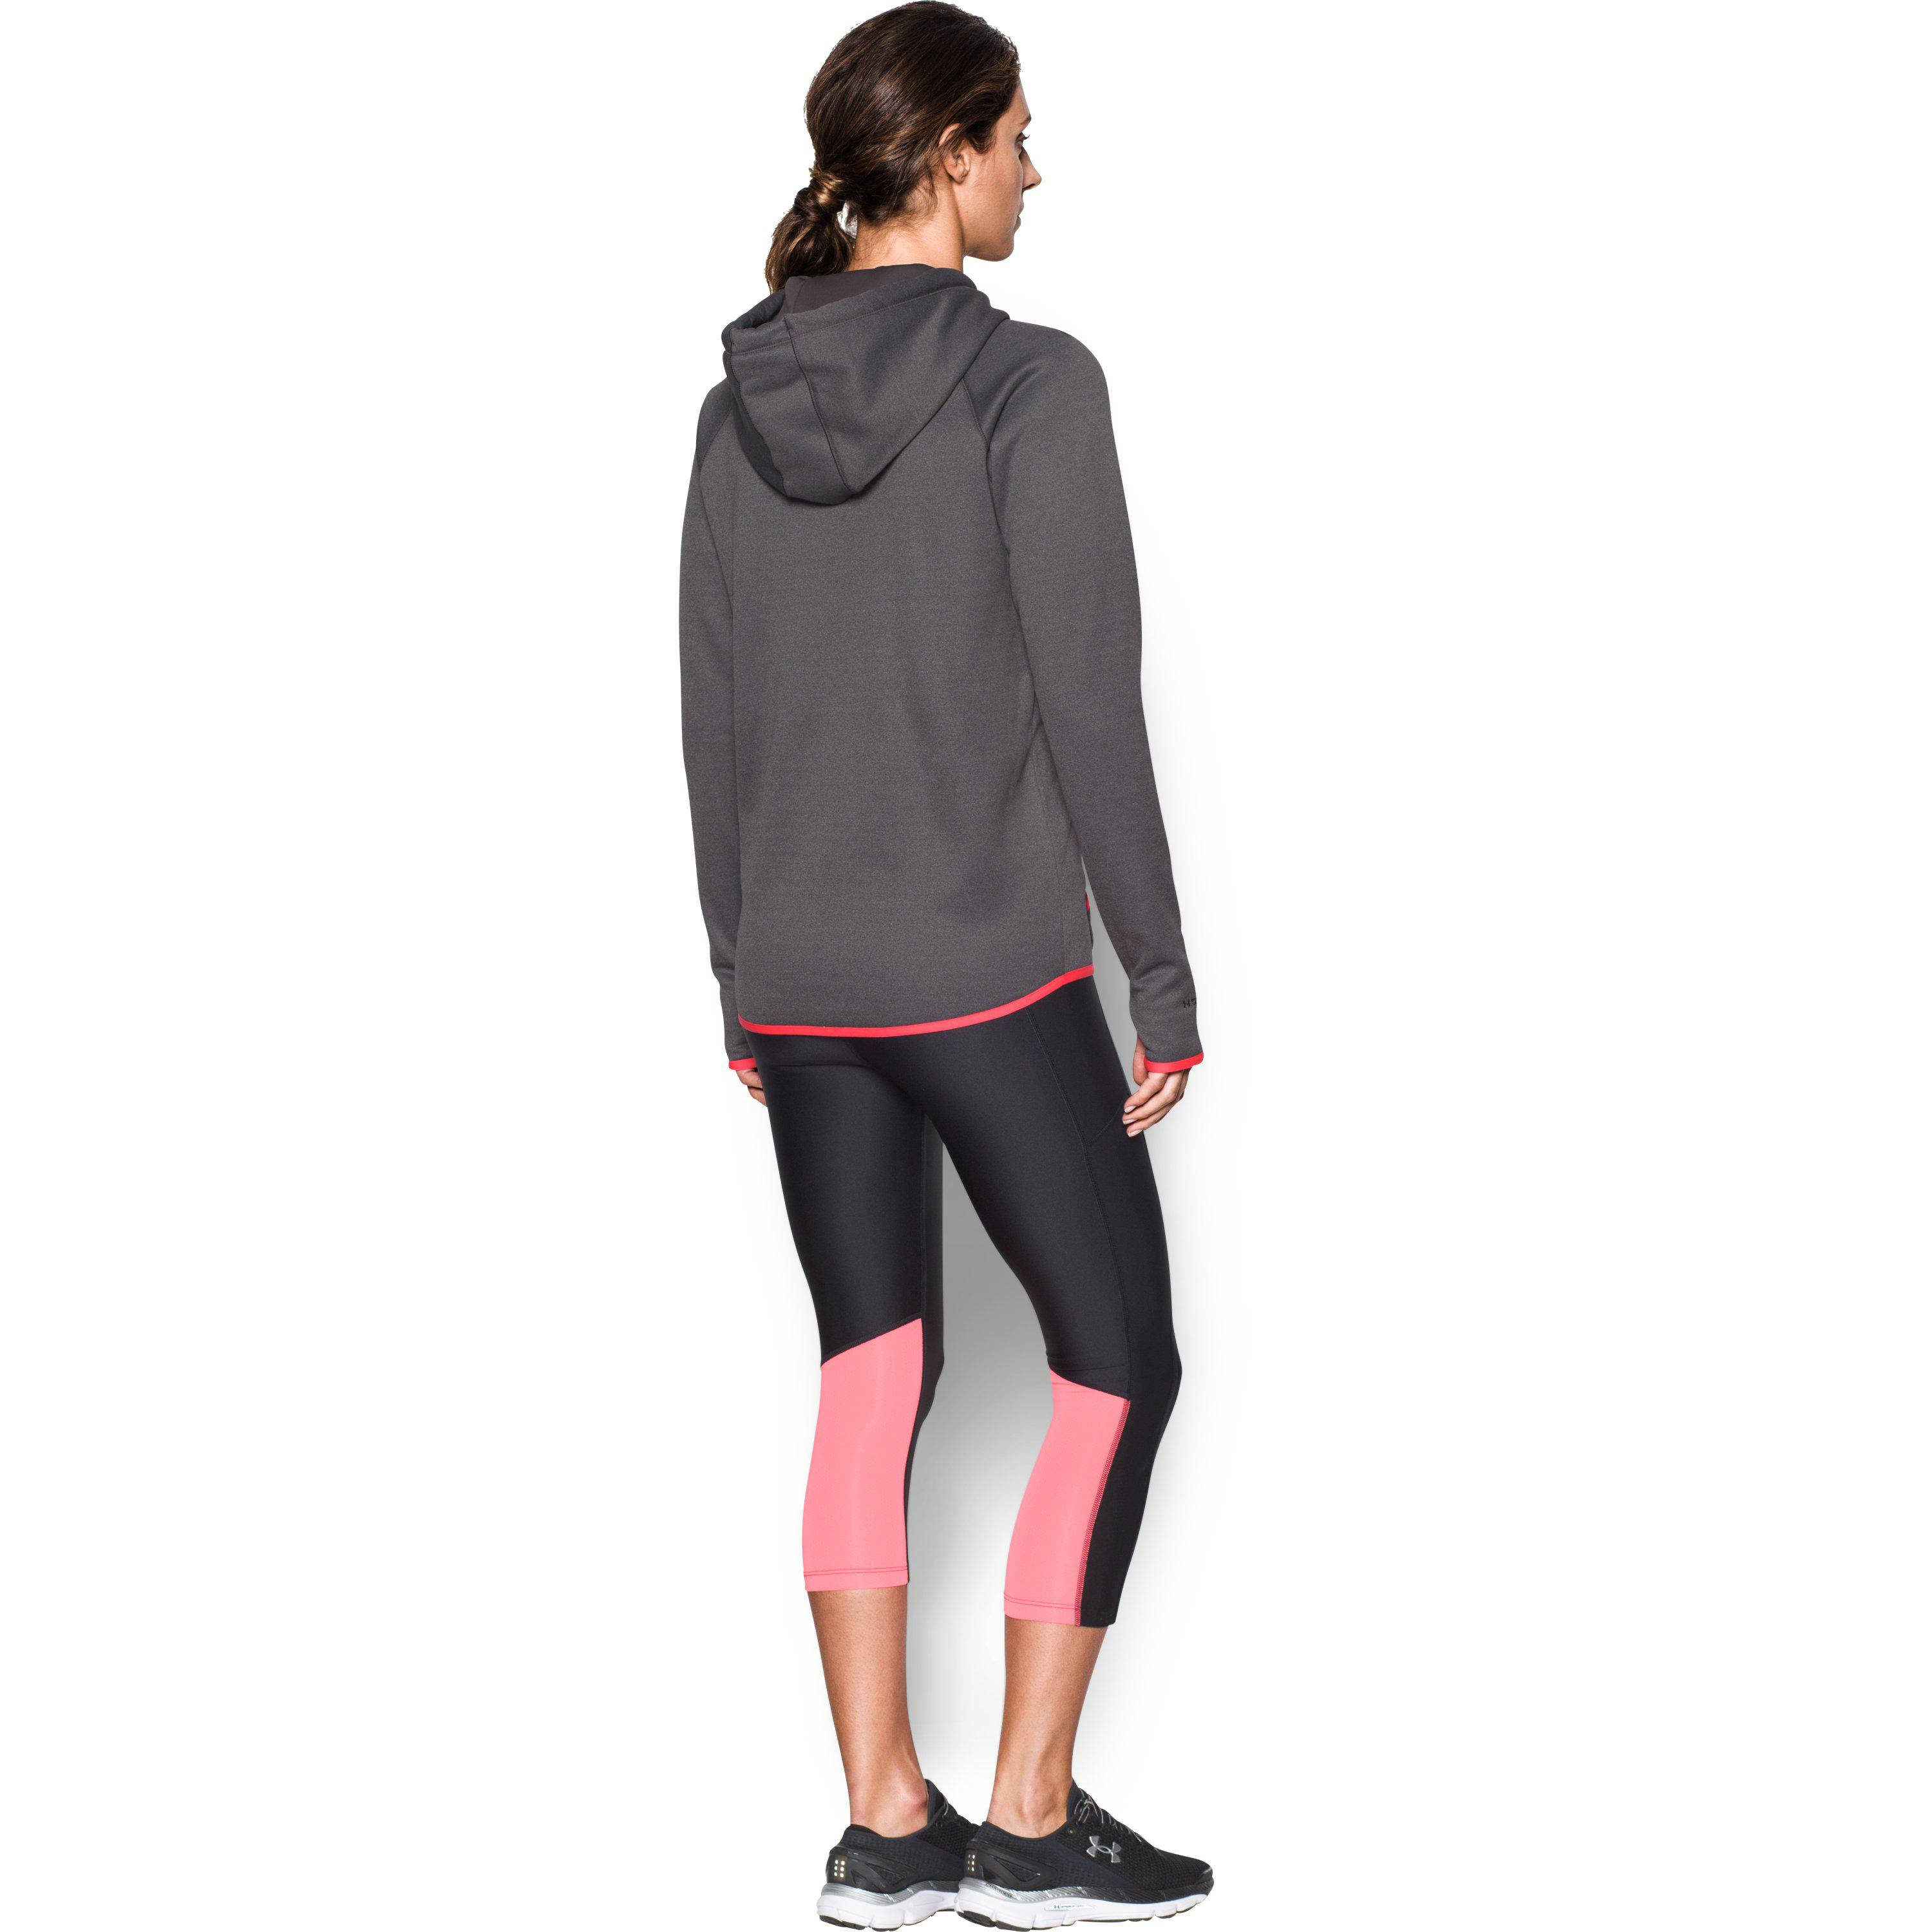 dc53d8121a37 Gallery. Women s Champion Reverse Weave Women s Velour Hoodies Women s  Under Armour ...